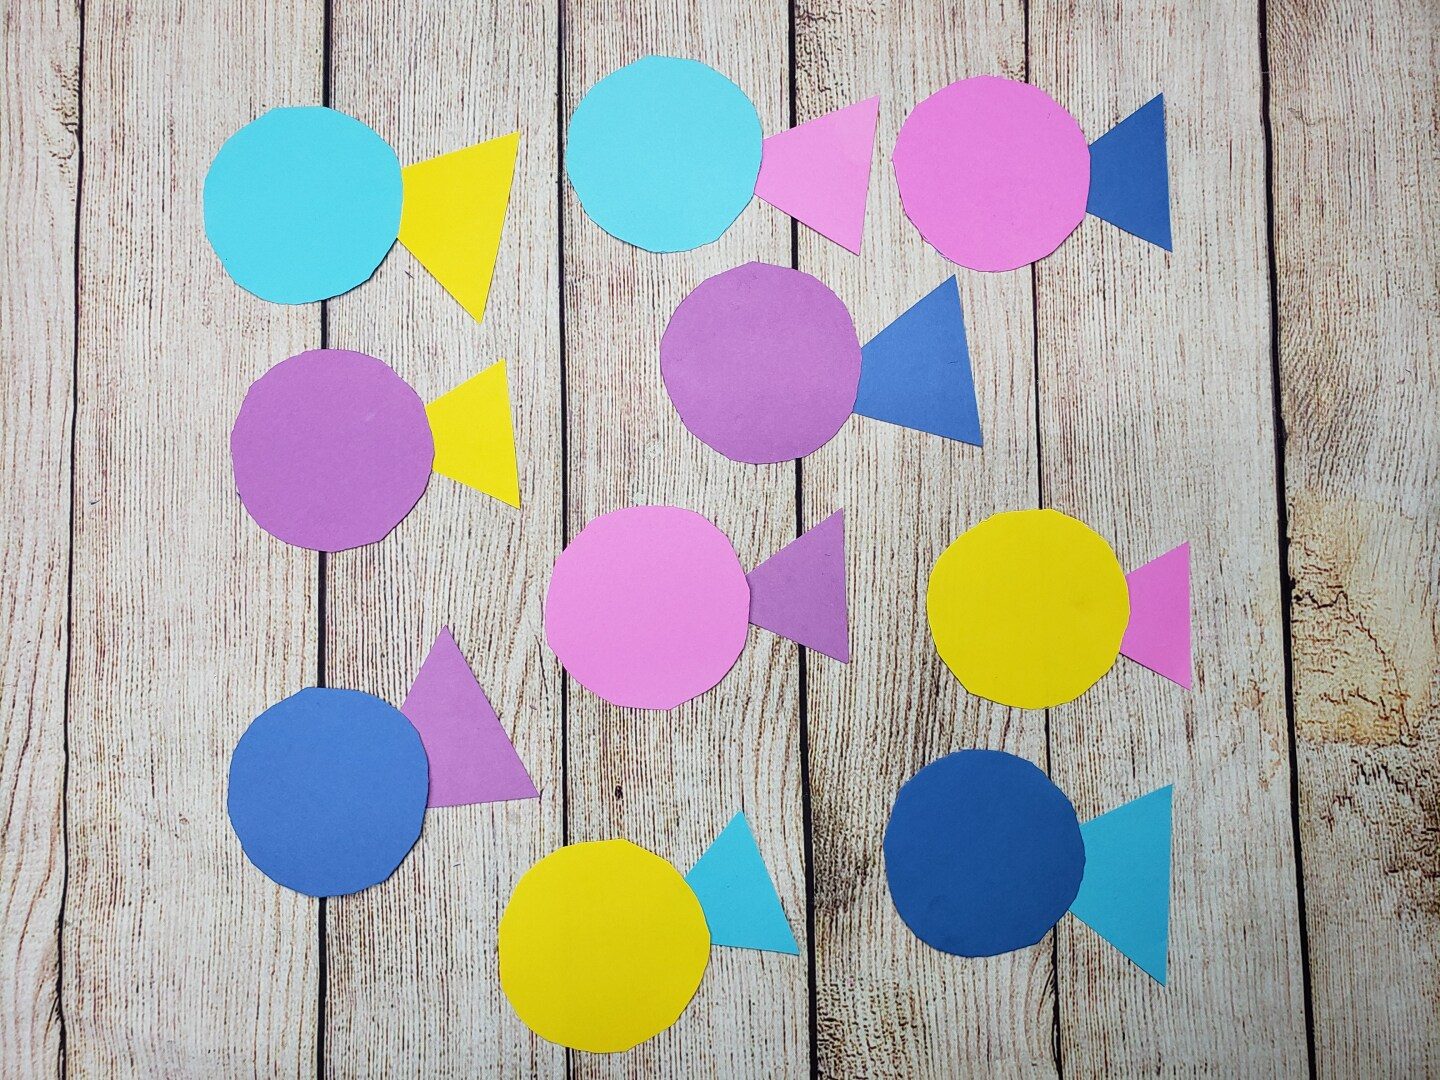 Ten colorful fish shapes made out of circles and triangles made out of construction paper.